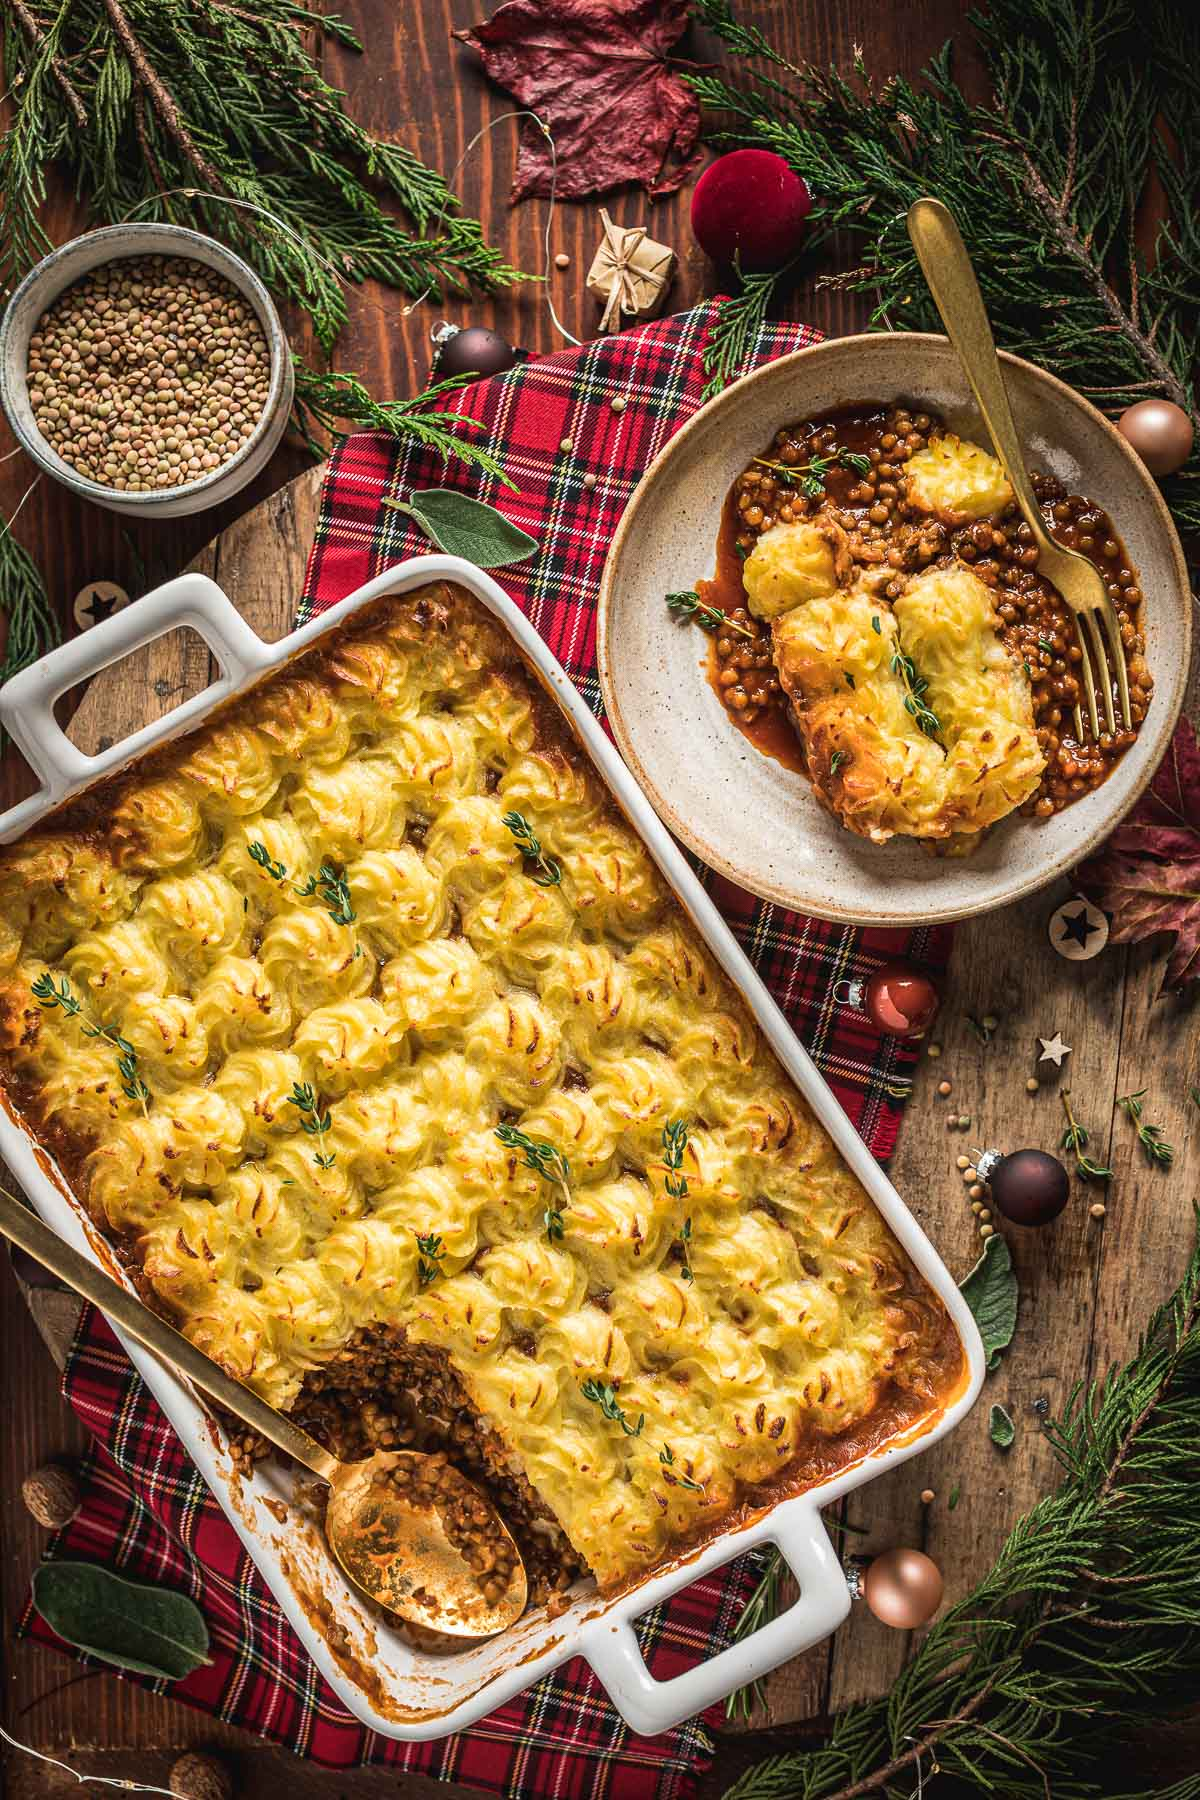 healthy Vegan Shepherd's Pie recipe with lentil ragu for Thanksgiving ricetta di Natale Shepherd's Pie vegan di lenticchie con ragù di lenticchie funghi